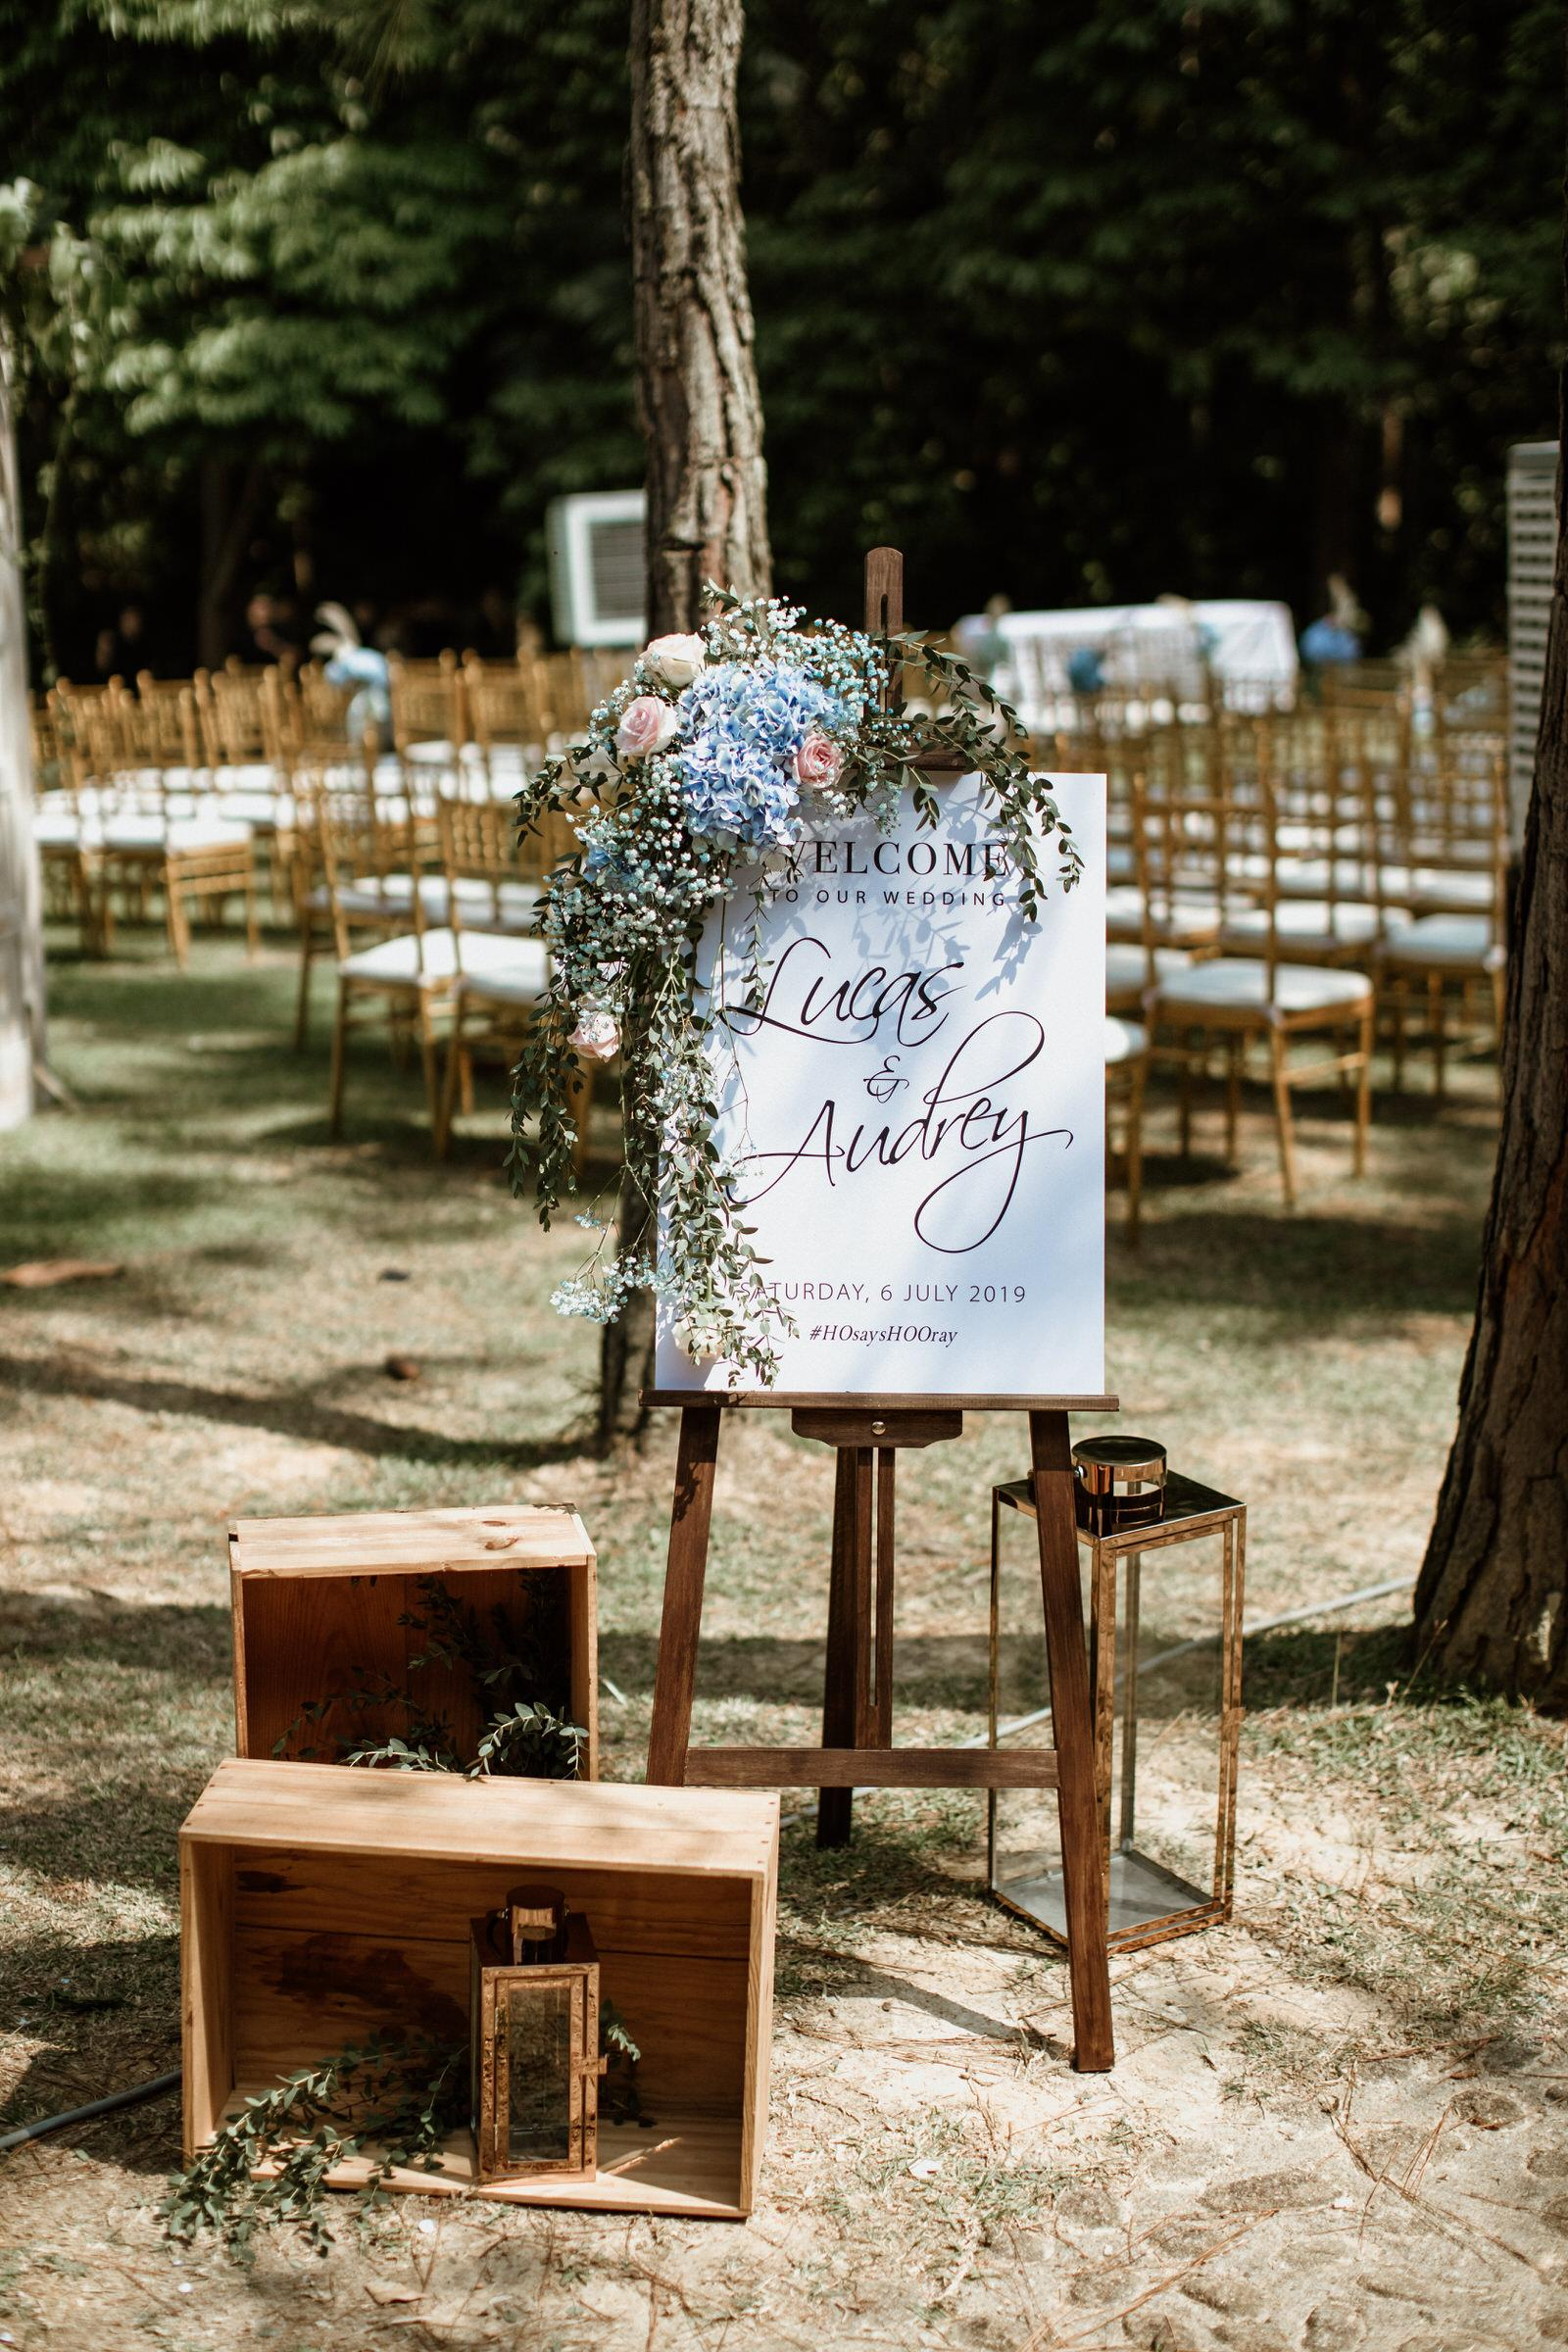 Tanarimba Rustic Garden Weding Janda baik Decoration wooden chair reserved note Cliff Choong Photography